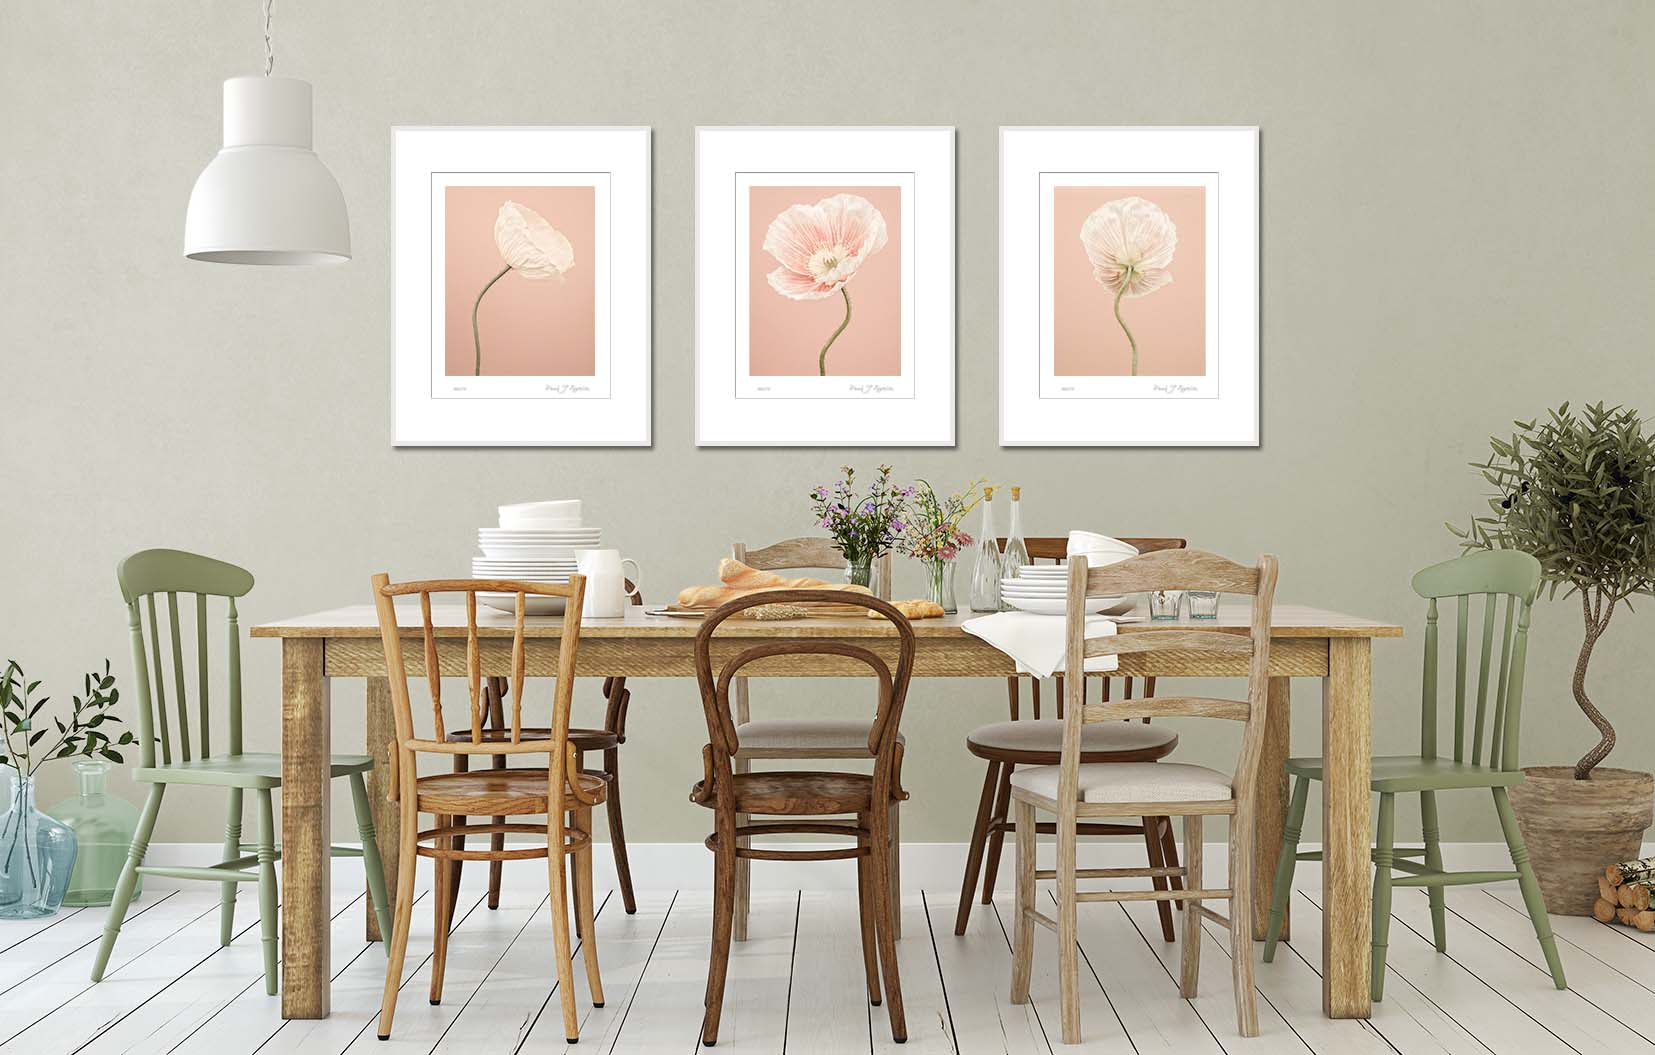 Peach coloured Icelandic Poppies. Limited edition photographic prints by fine art photographer Paul Coghlin.